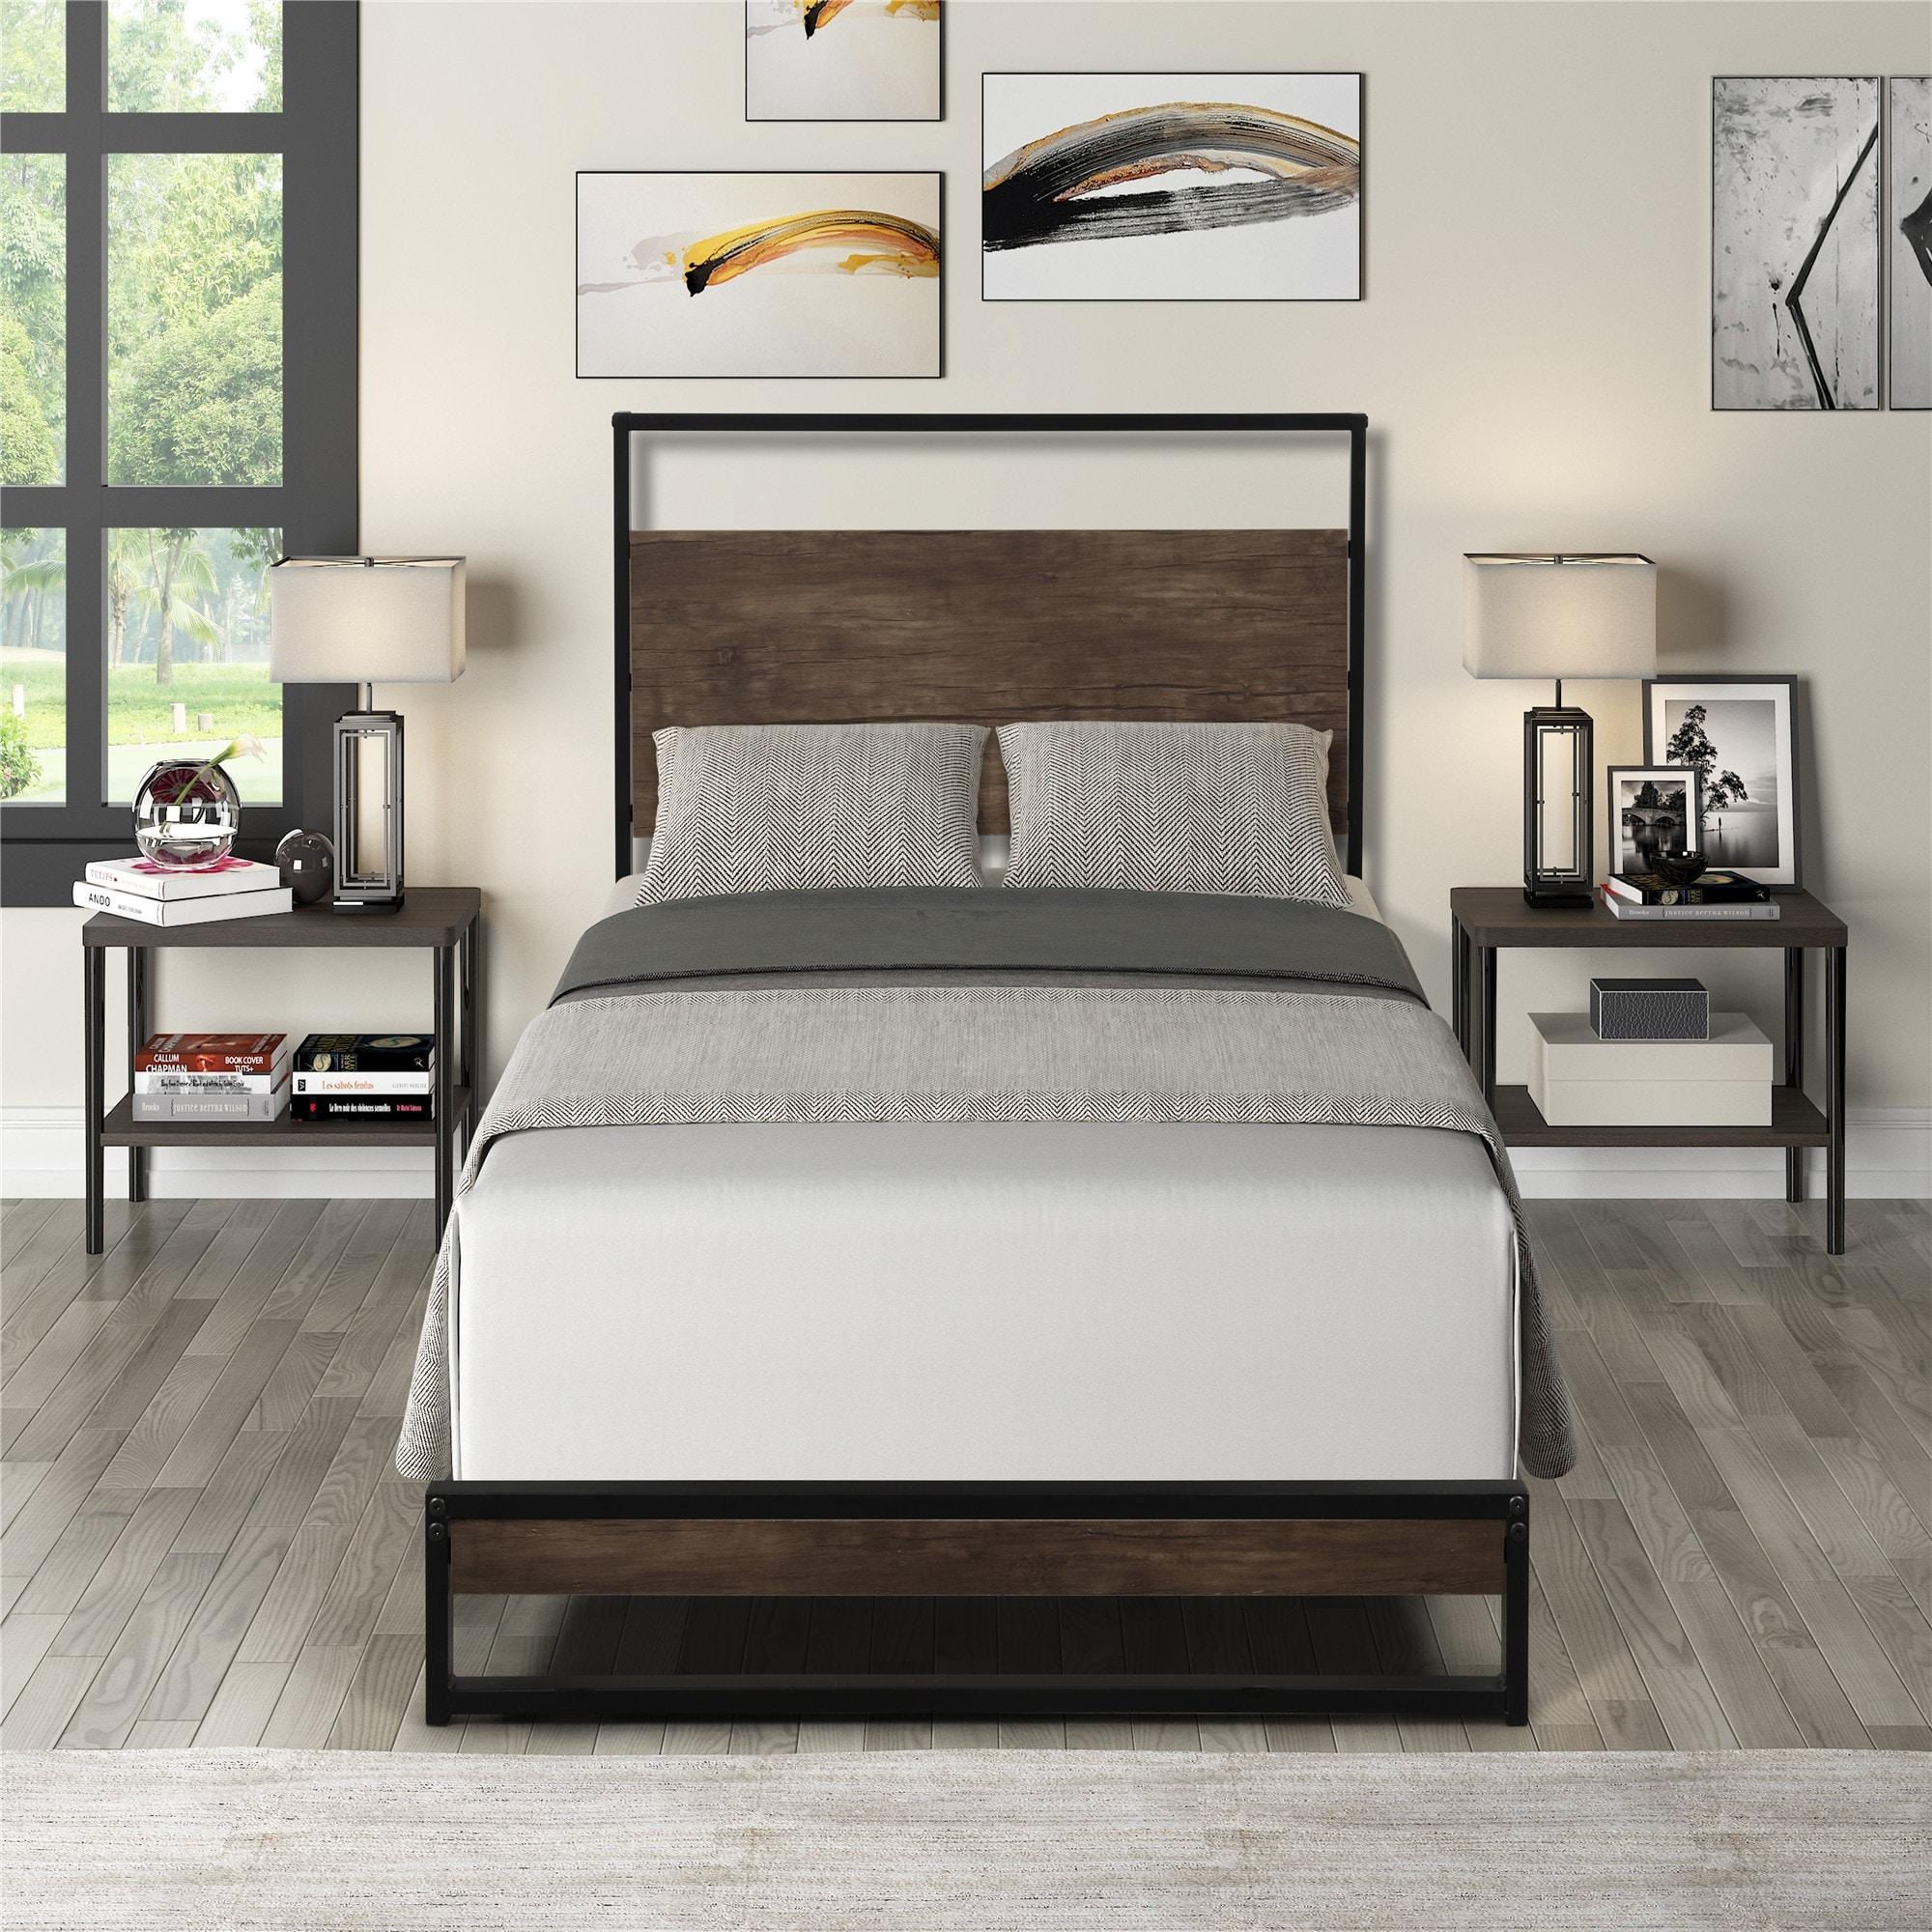 Twin Metal Bed Frame With Wood Slats On Sale Overstock 32654849